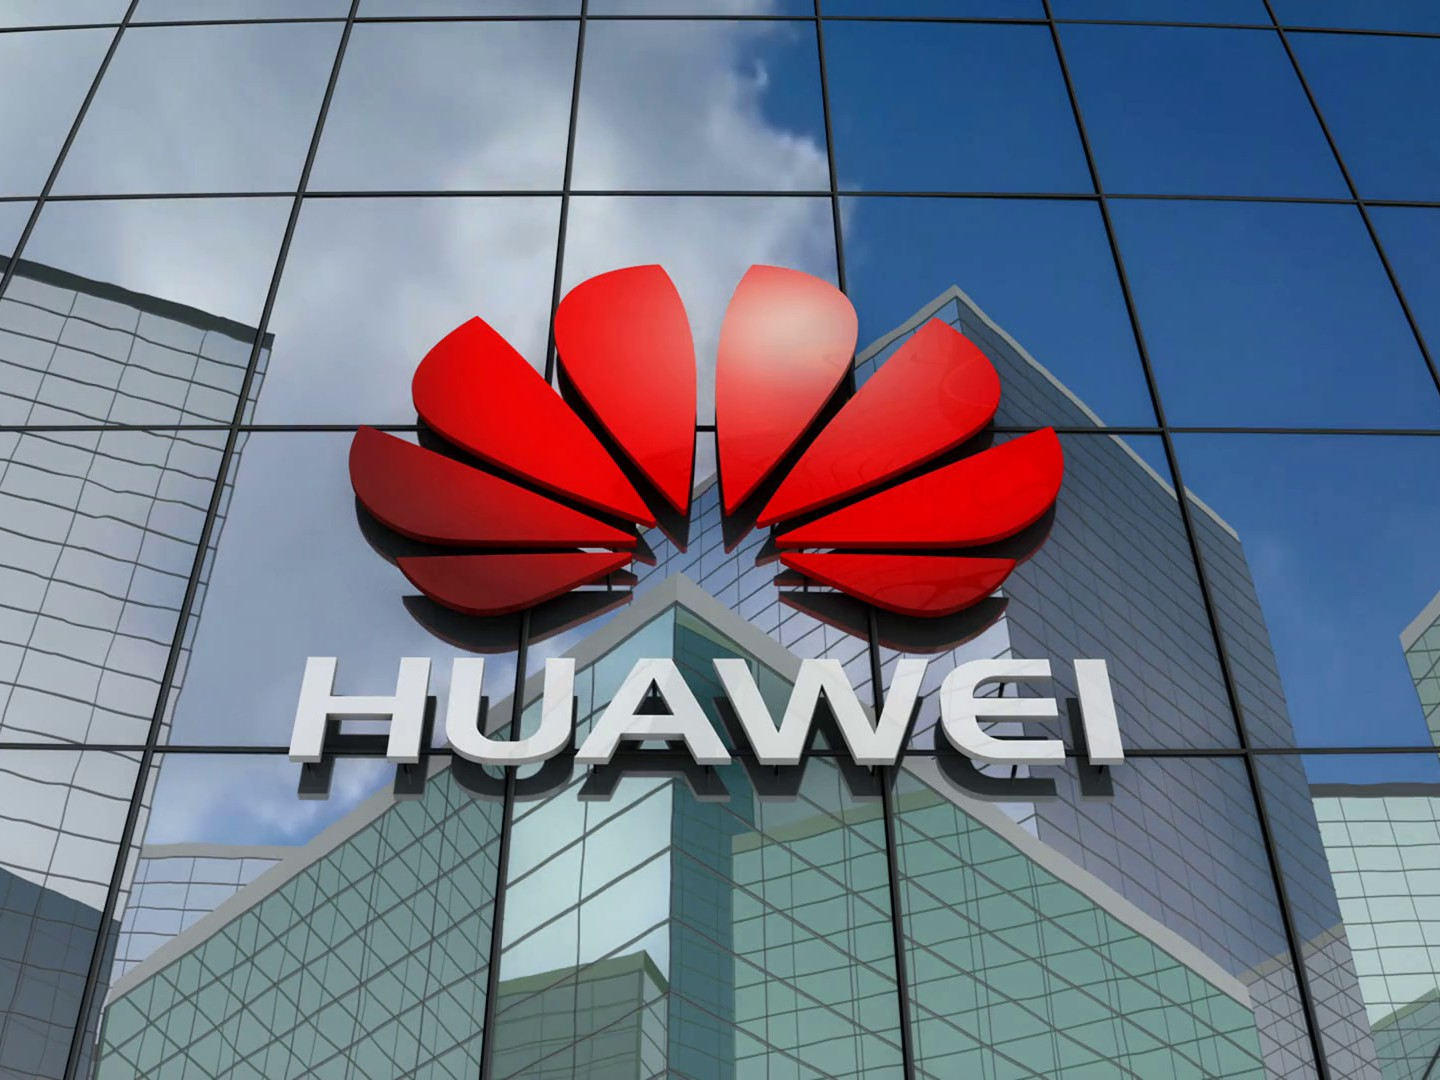 United States claims Huawei has backdoor to all mobile networks""